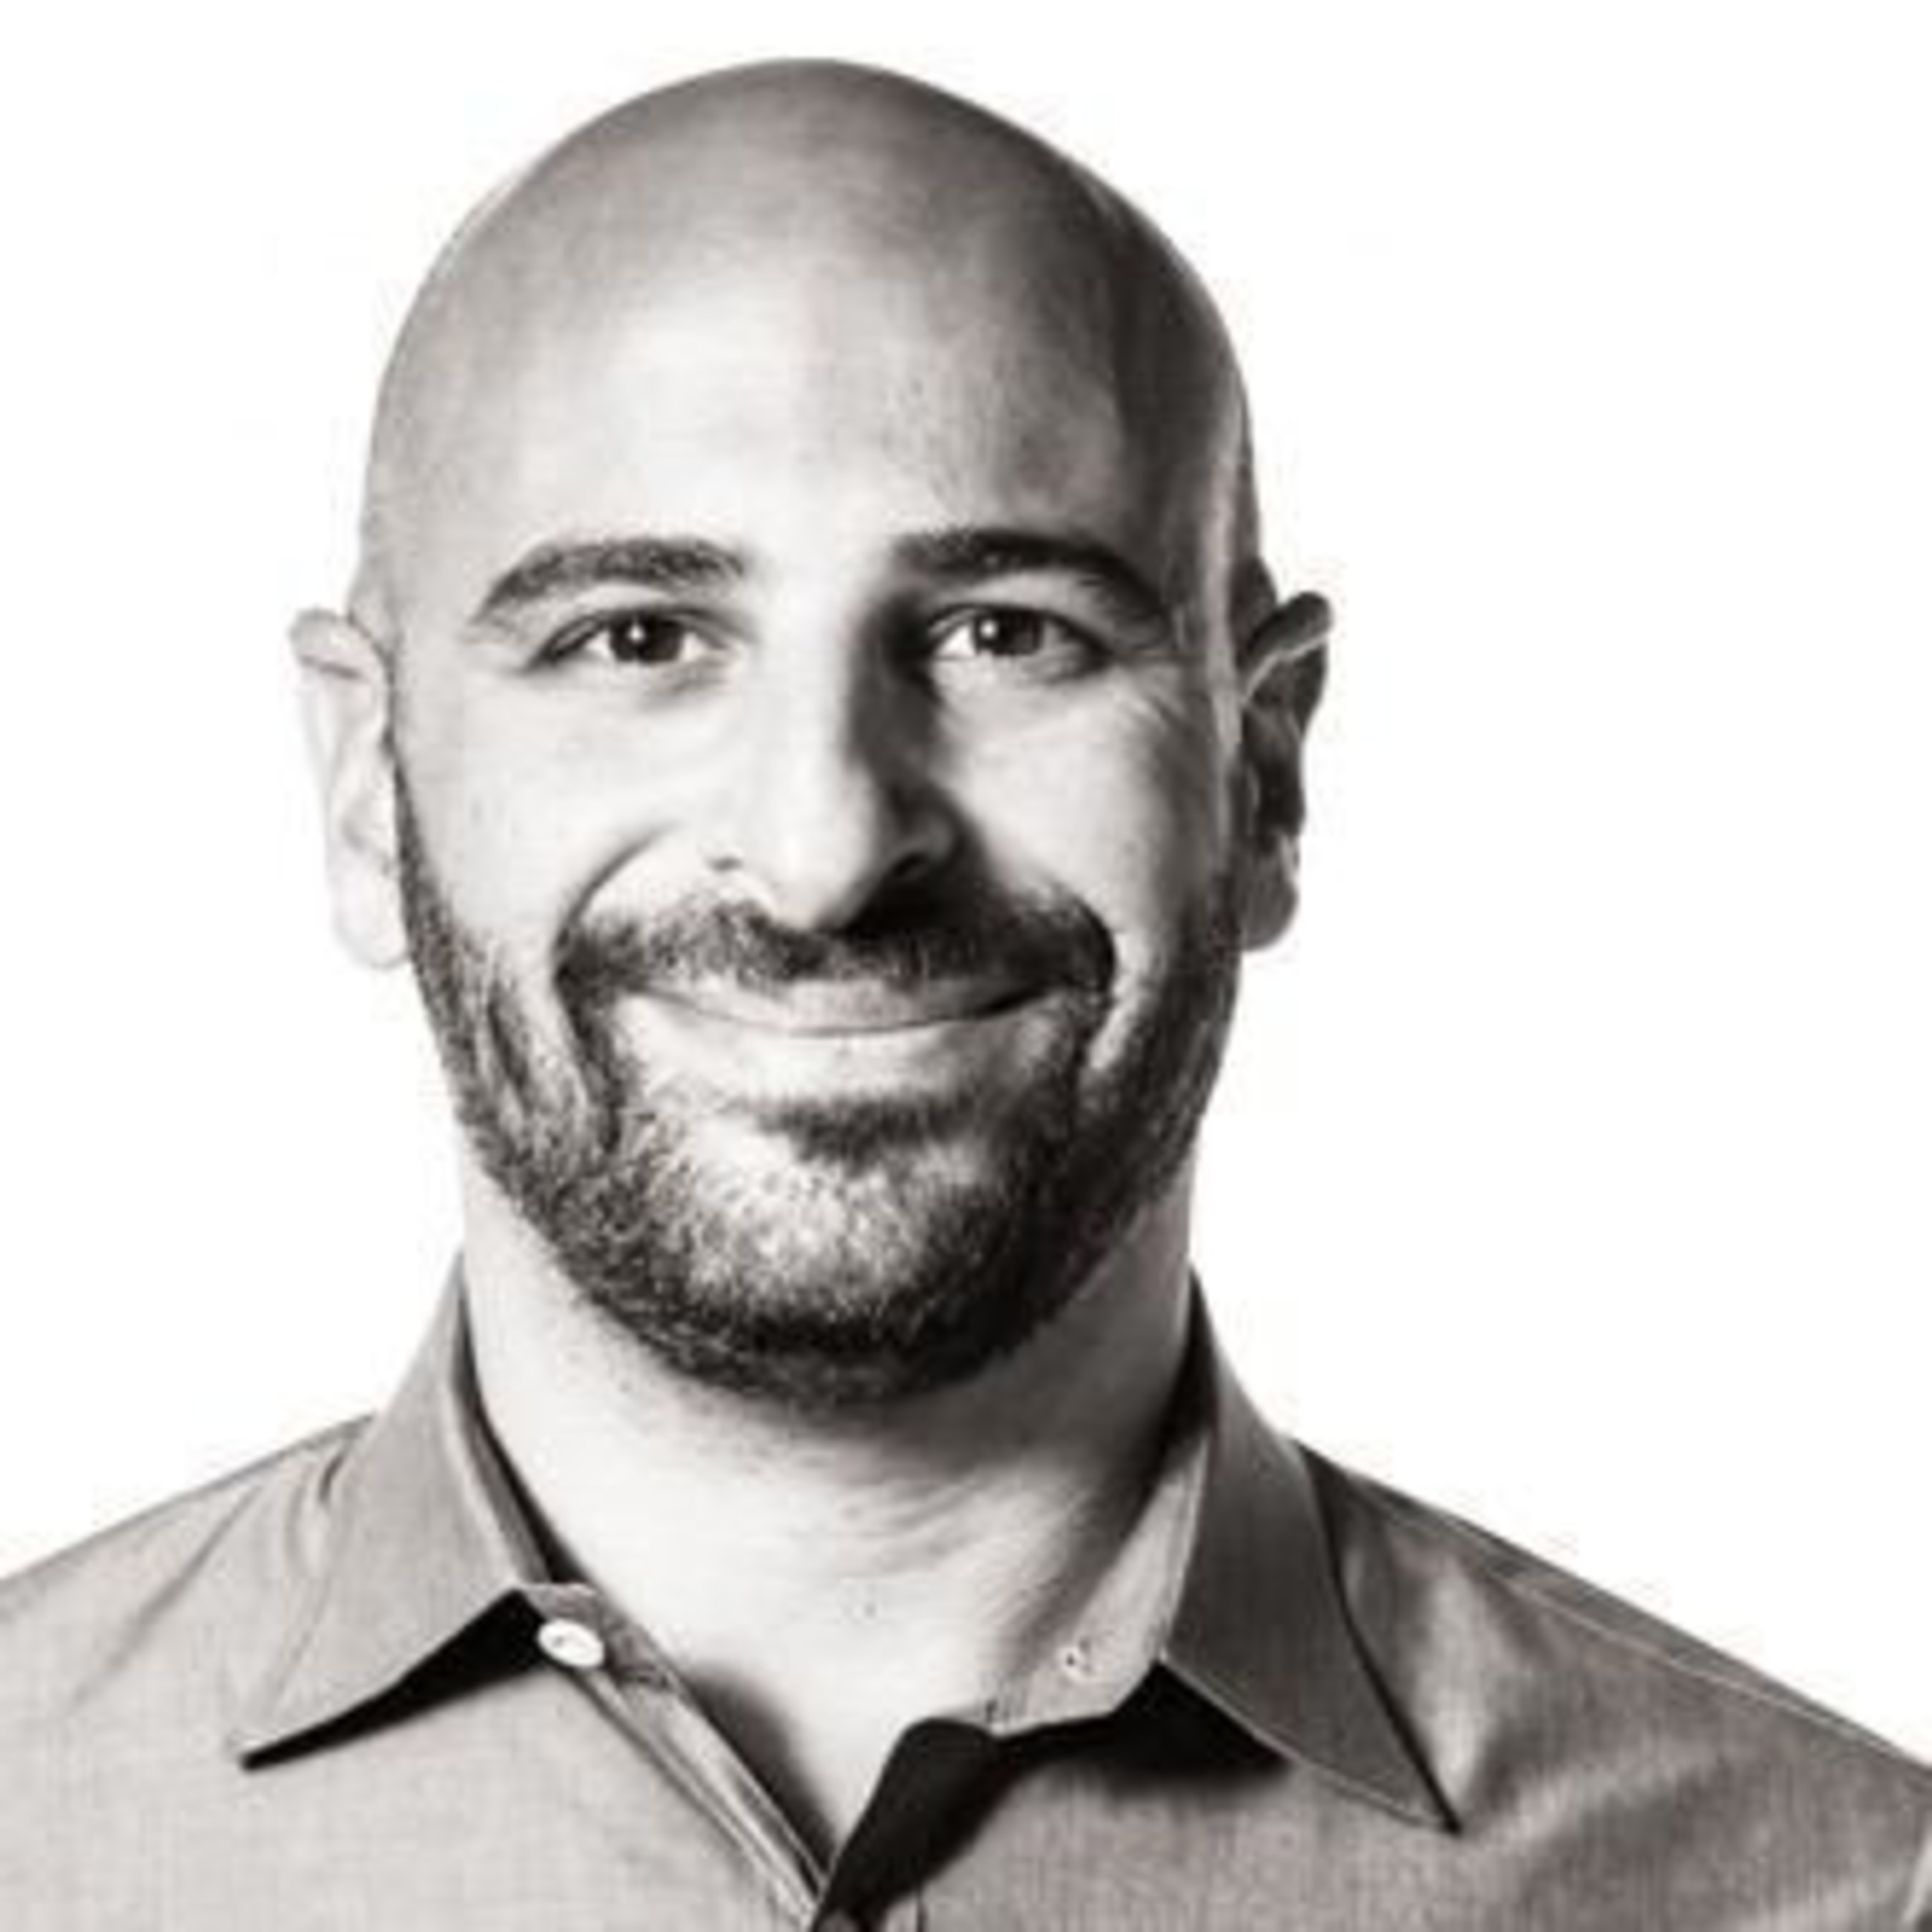 TECH ENTREPENEUR ADAM PISONI AND THE RAPID RESULTS INSTITUTE HAVE SOMETHING TO YAMMER ABOUT